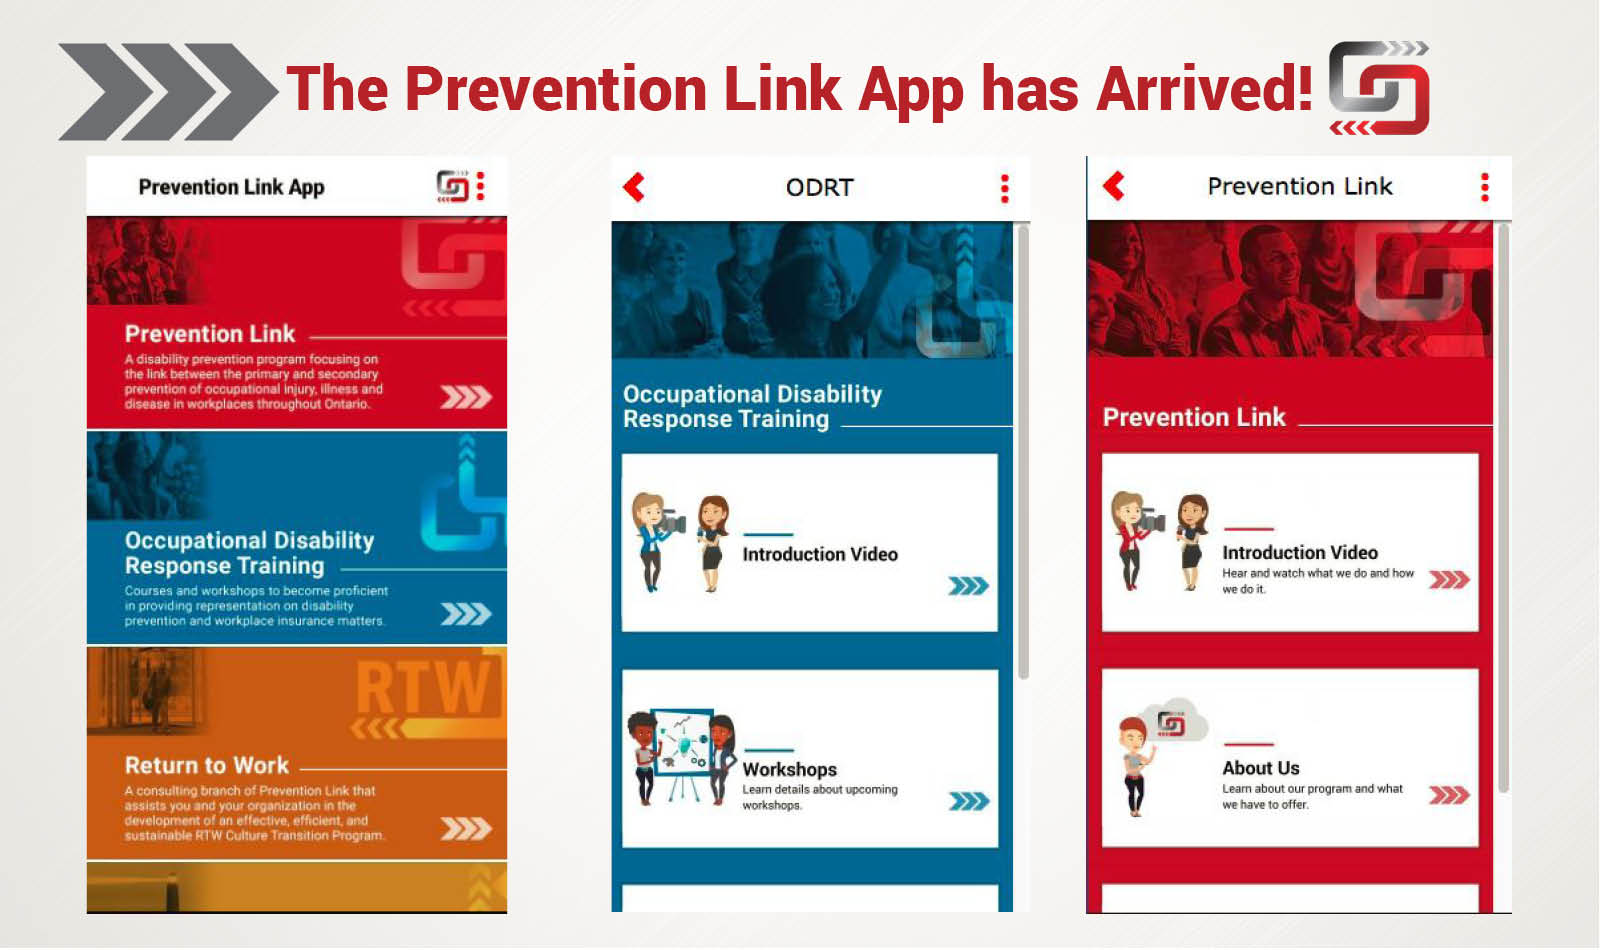 Download the Prevention Link App